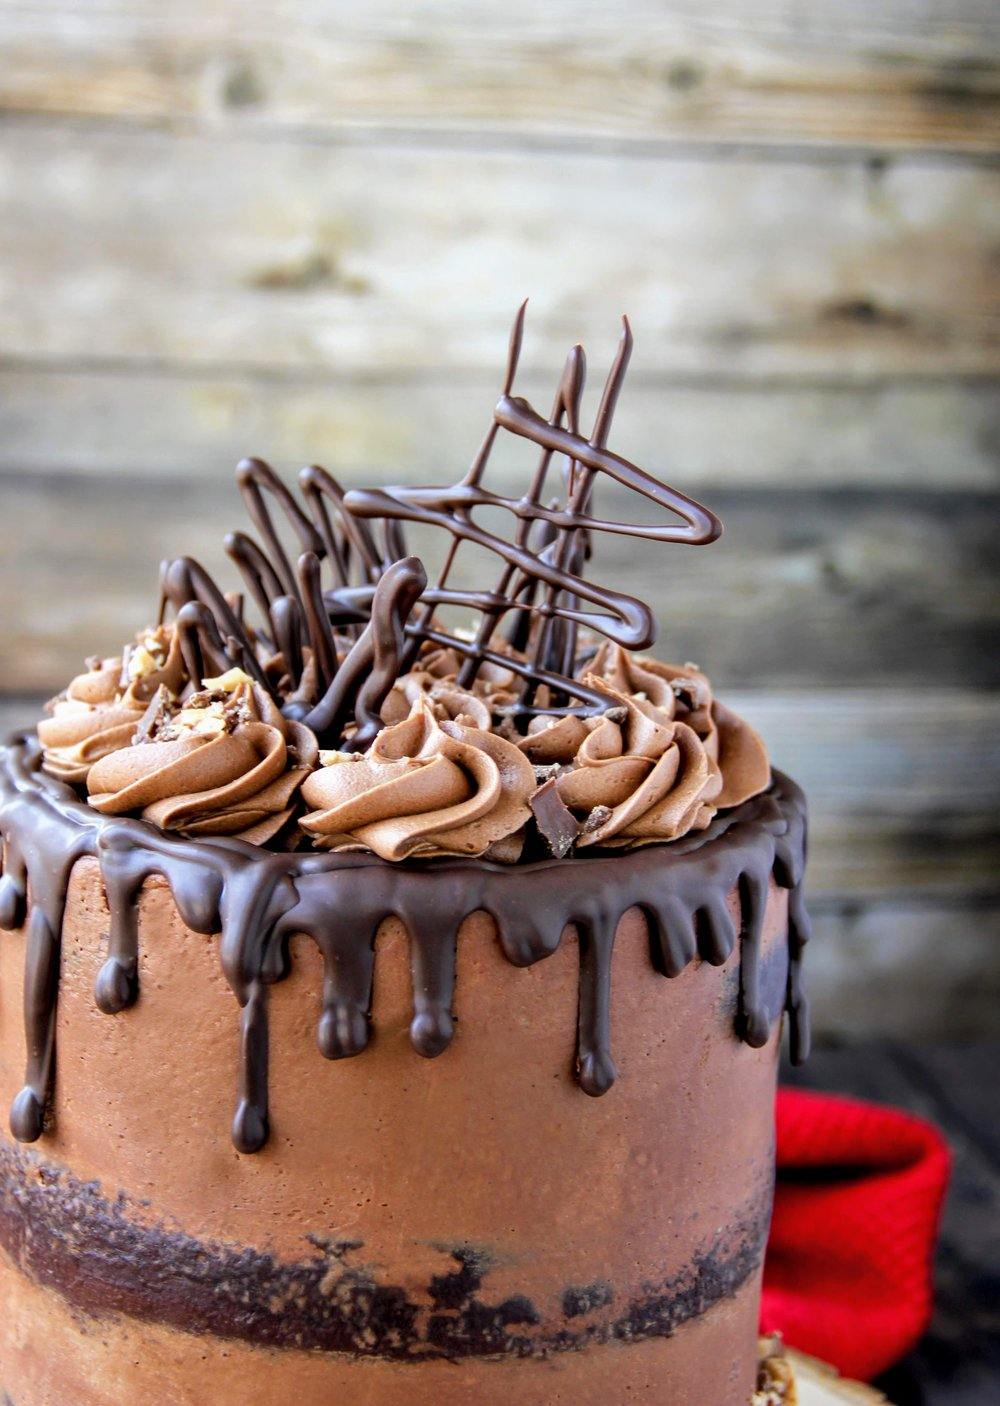 naked chocolate cake 6.jpg